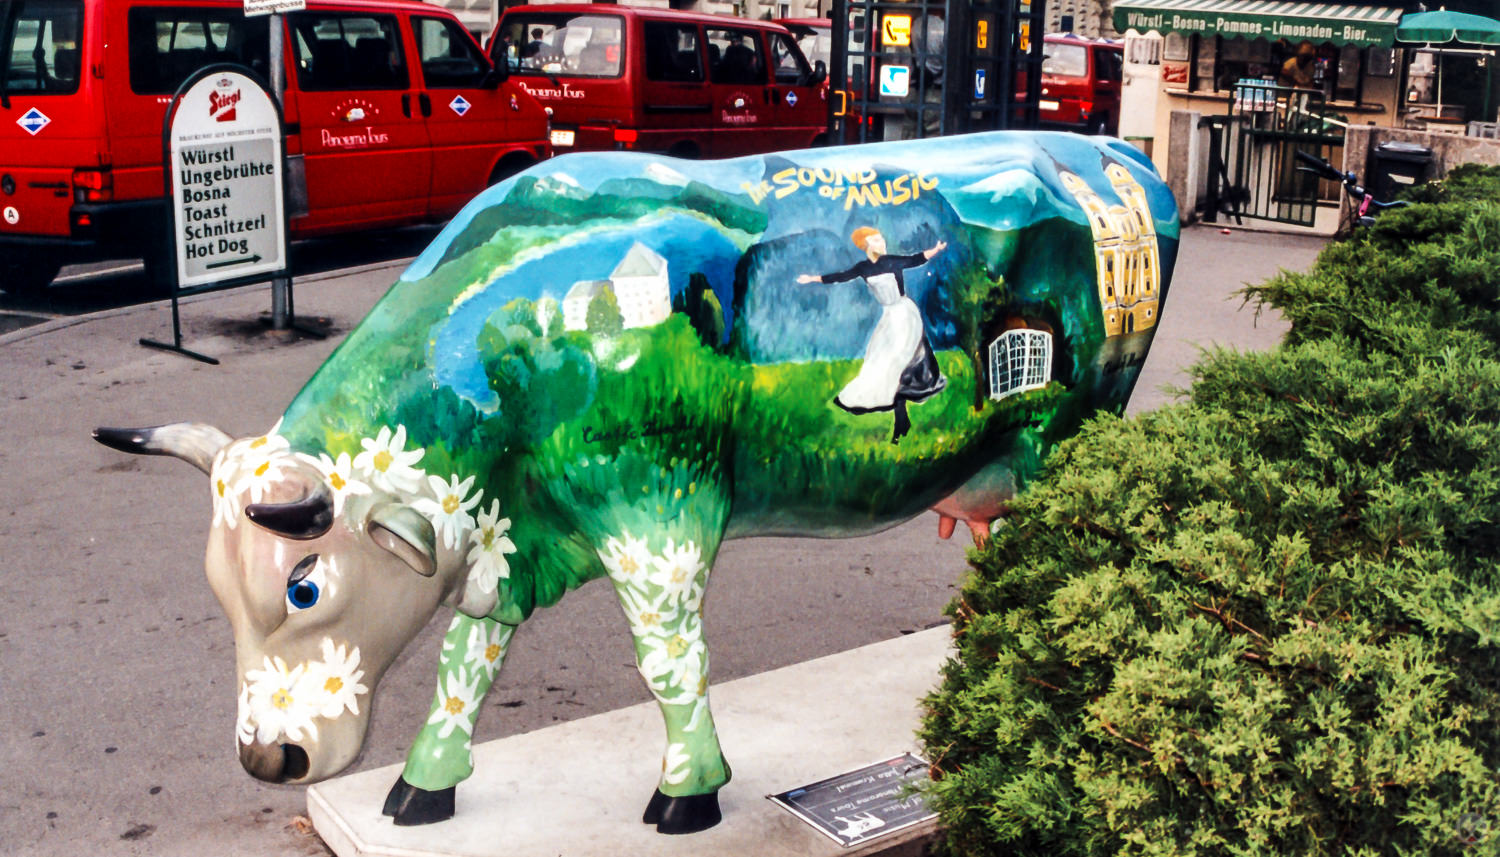 In 2000, Salzburg joined the list of cities to have a  Cow Parade .  This cow was sponsored by  Panorama Tours .